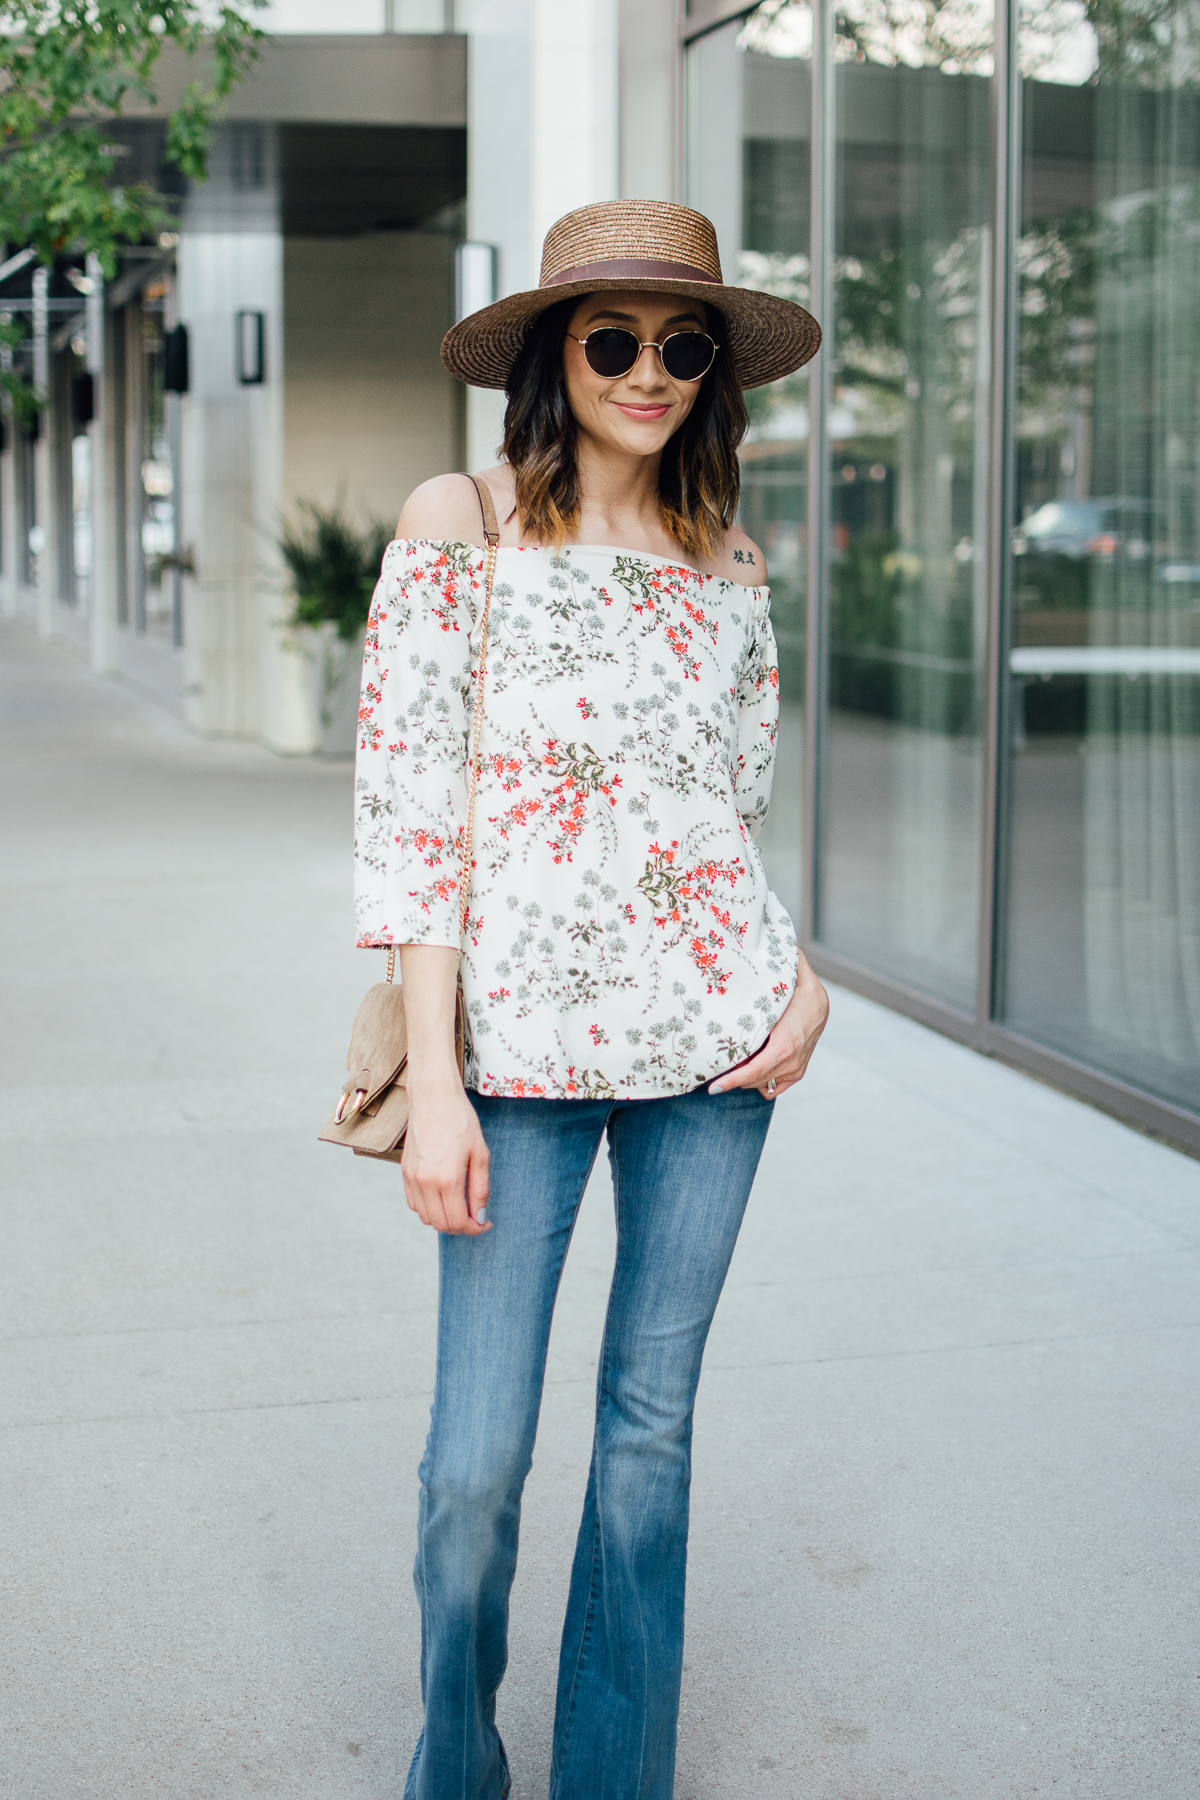 Off-the-shoulder top casual outfit